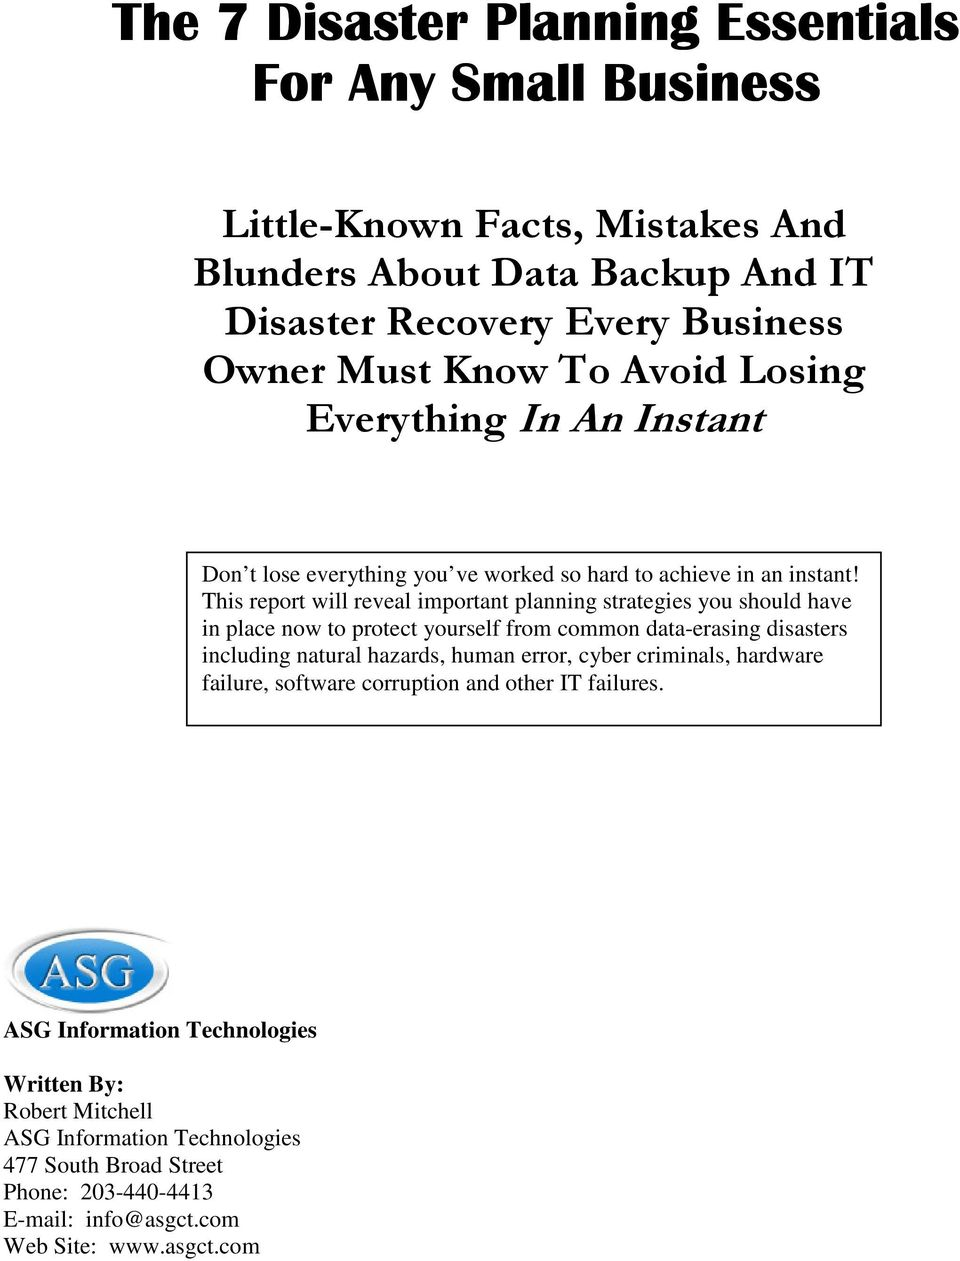 This report will reveal important planning strategies you should have in place now to protect yourself from common data-erasing disasters including natural hazards, human error,